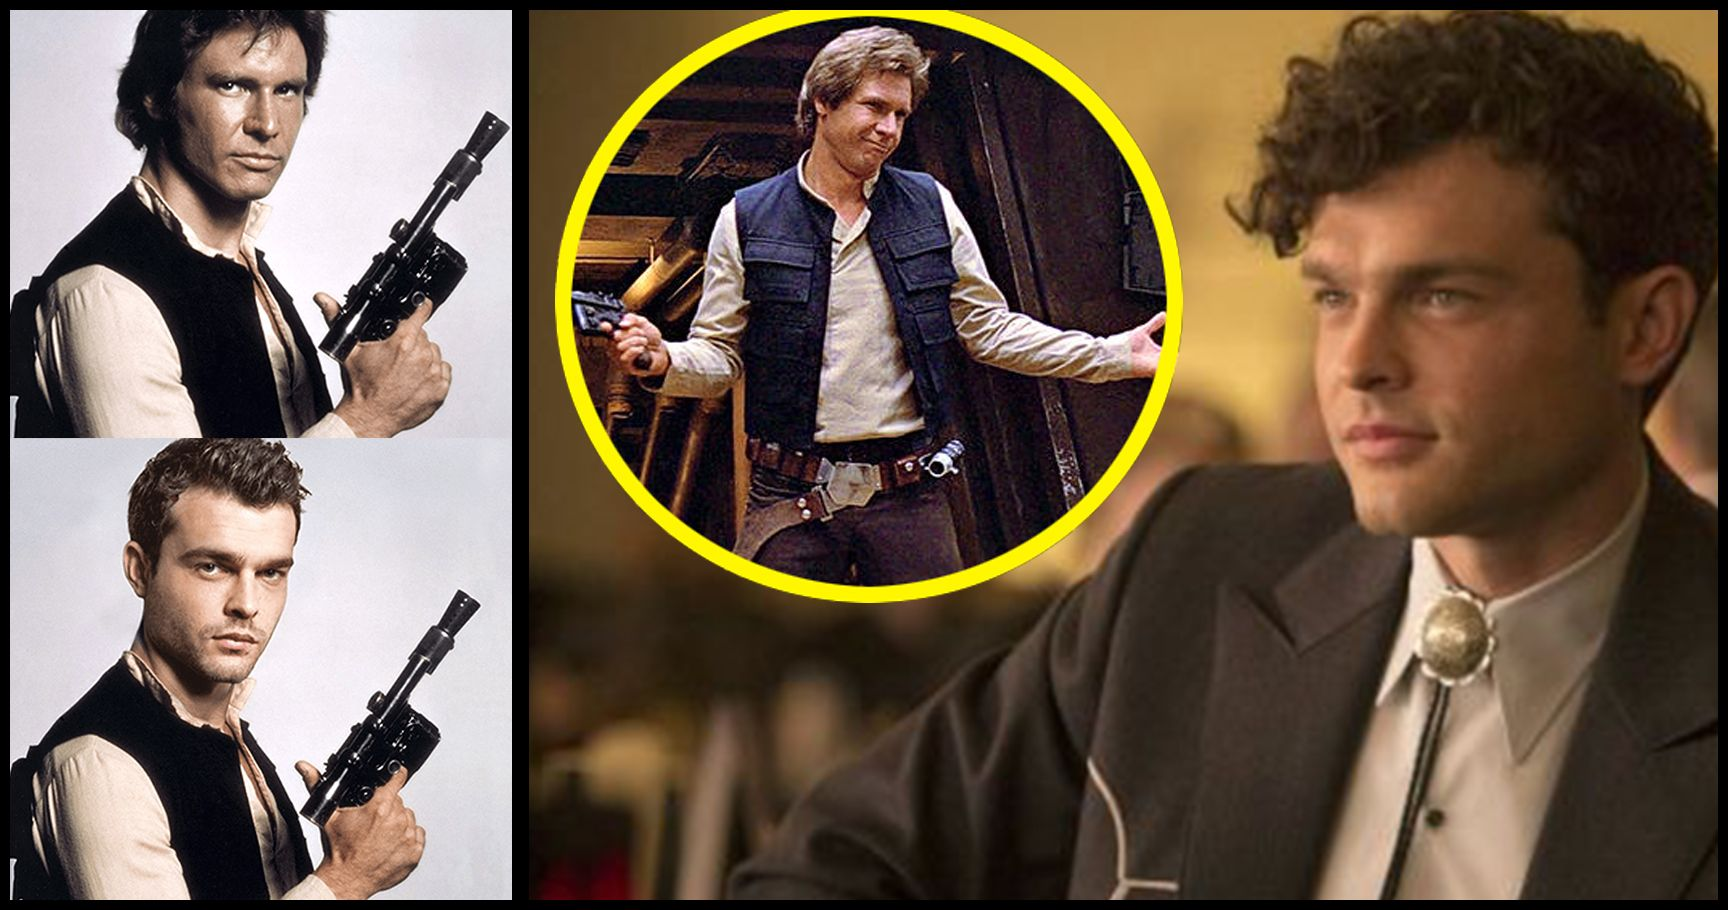 15 Reasons To Be Fearful Of The Han Solo Movie